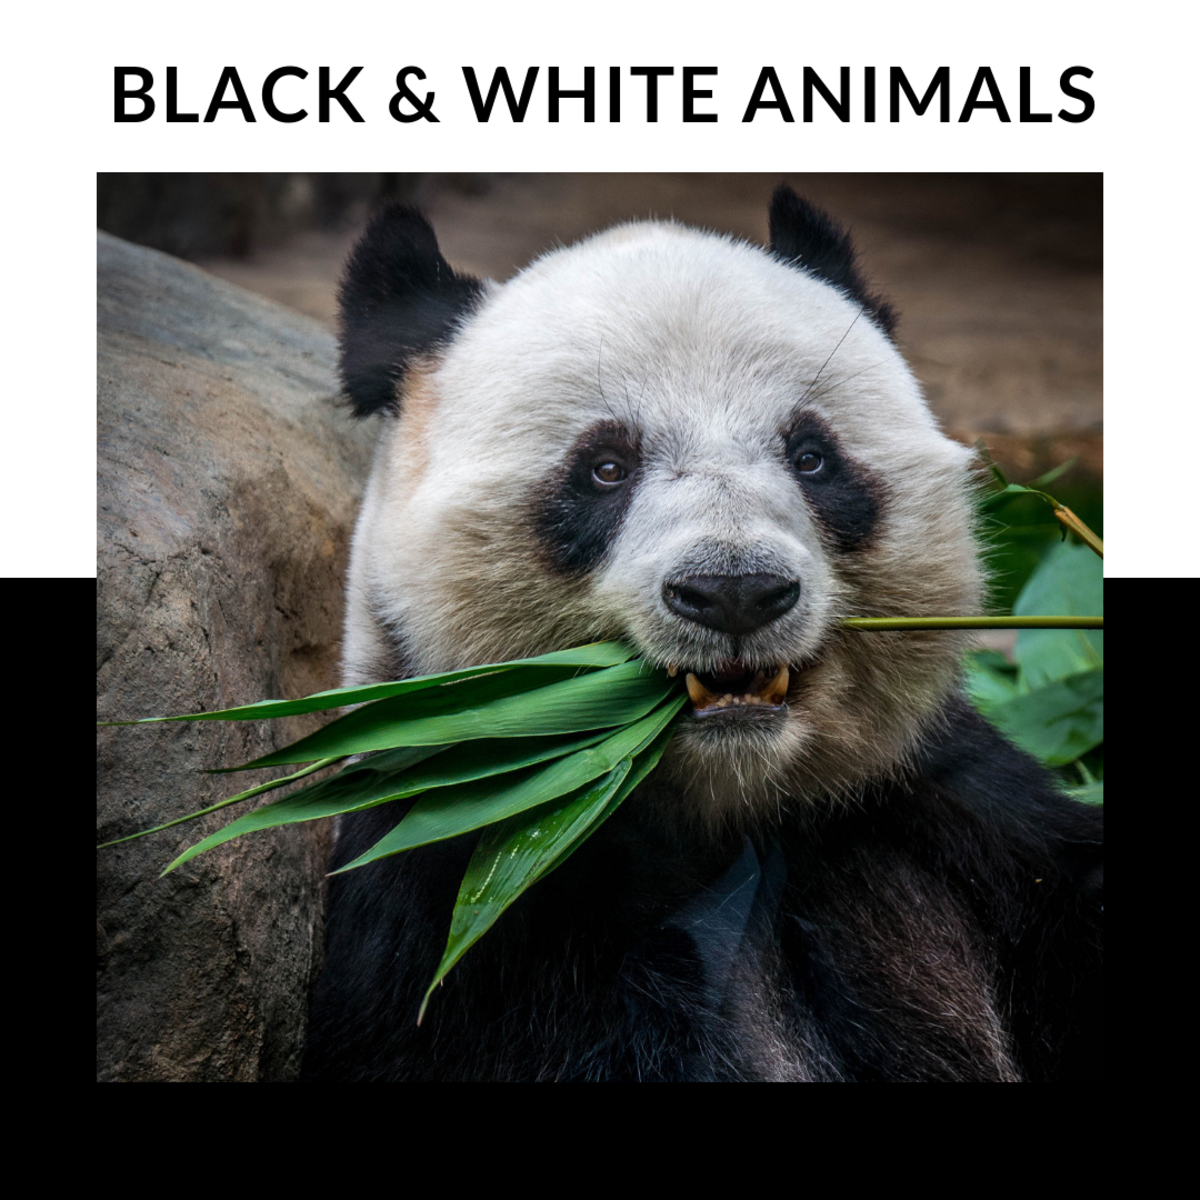 Black and white animals.